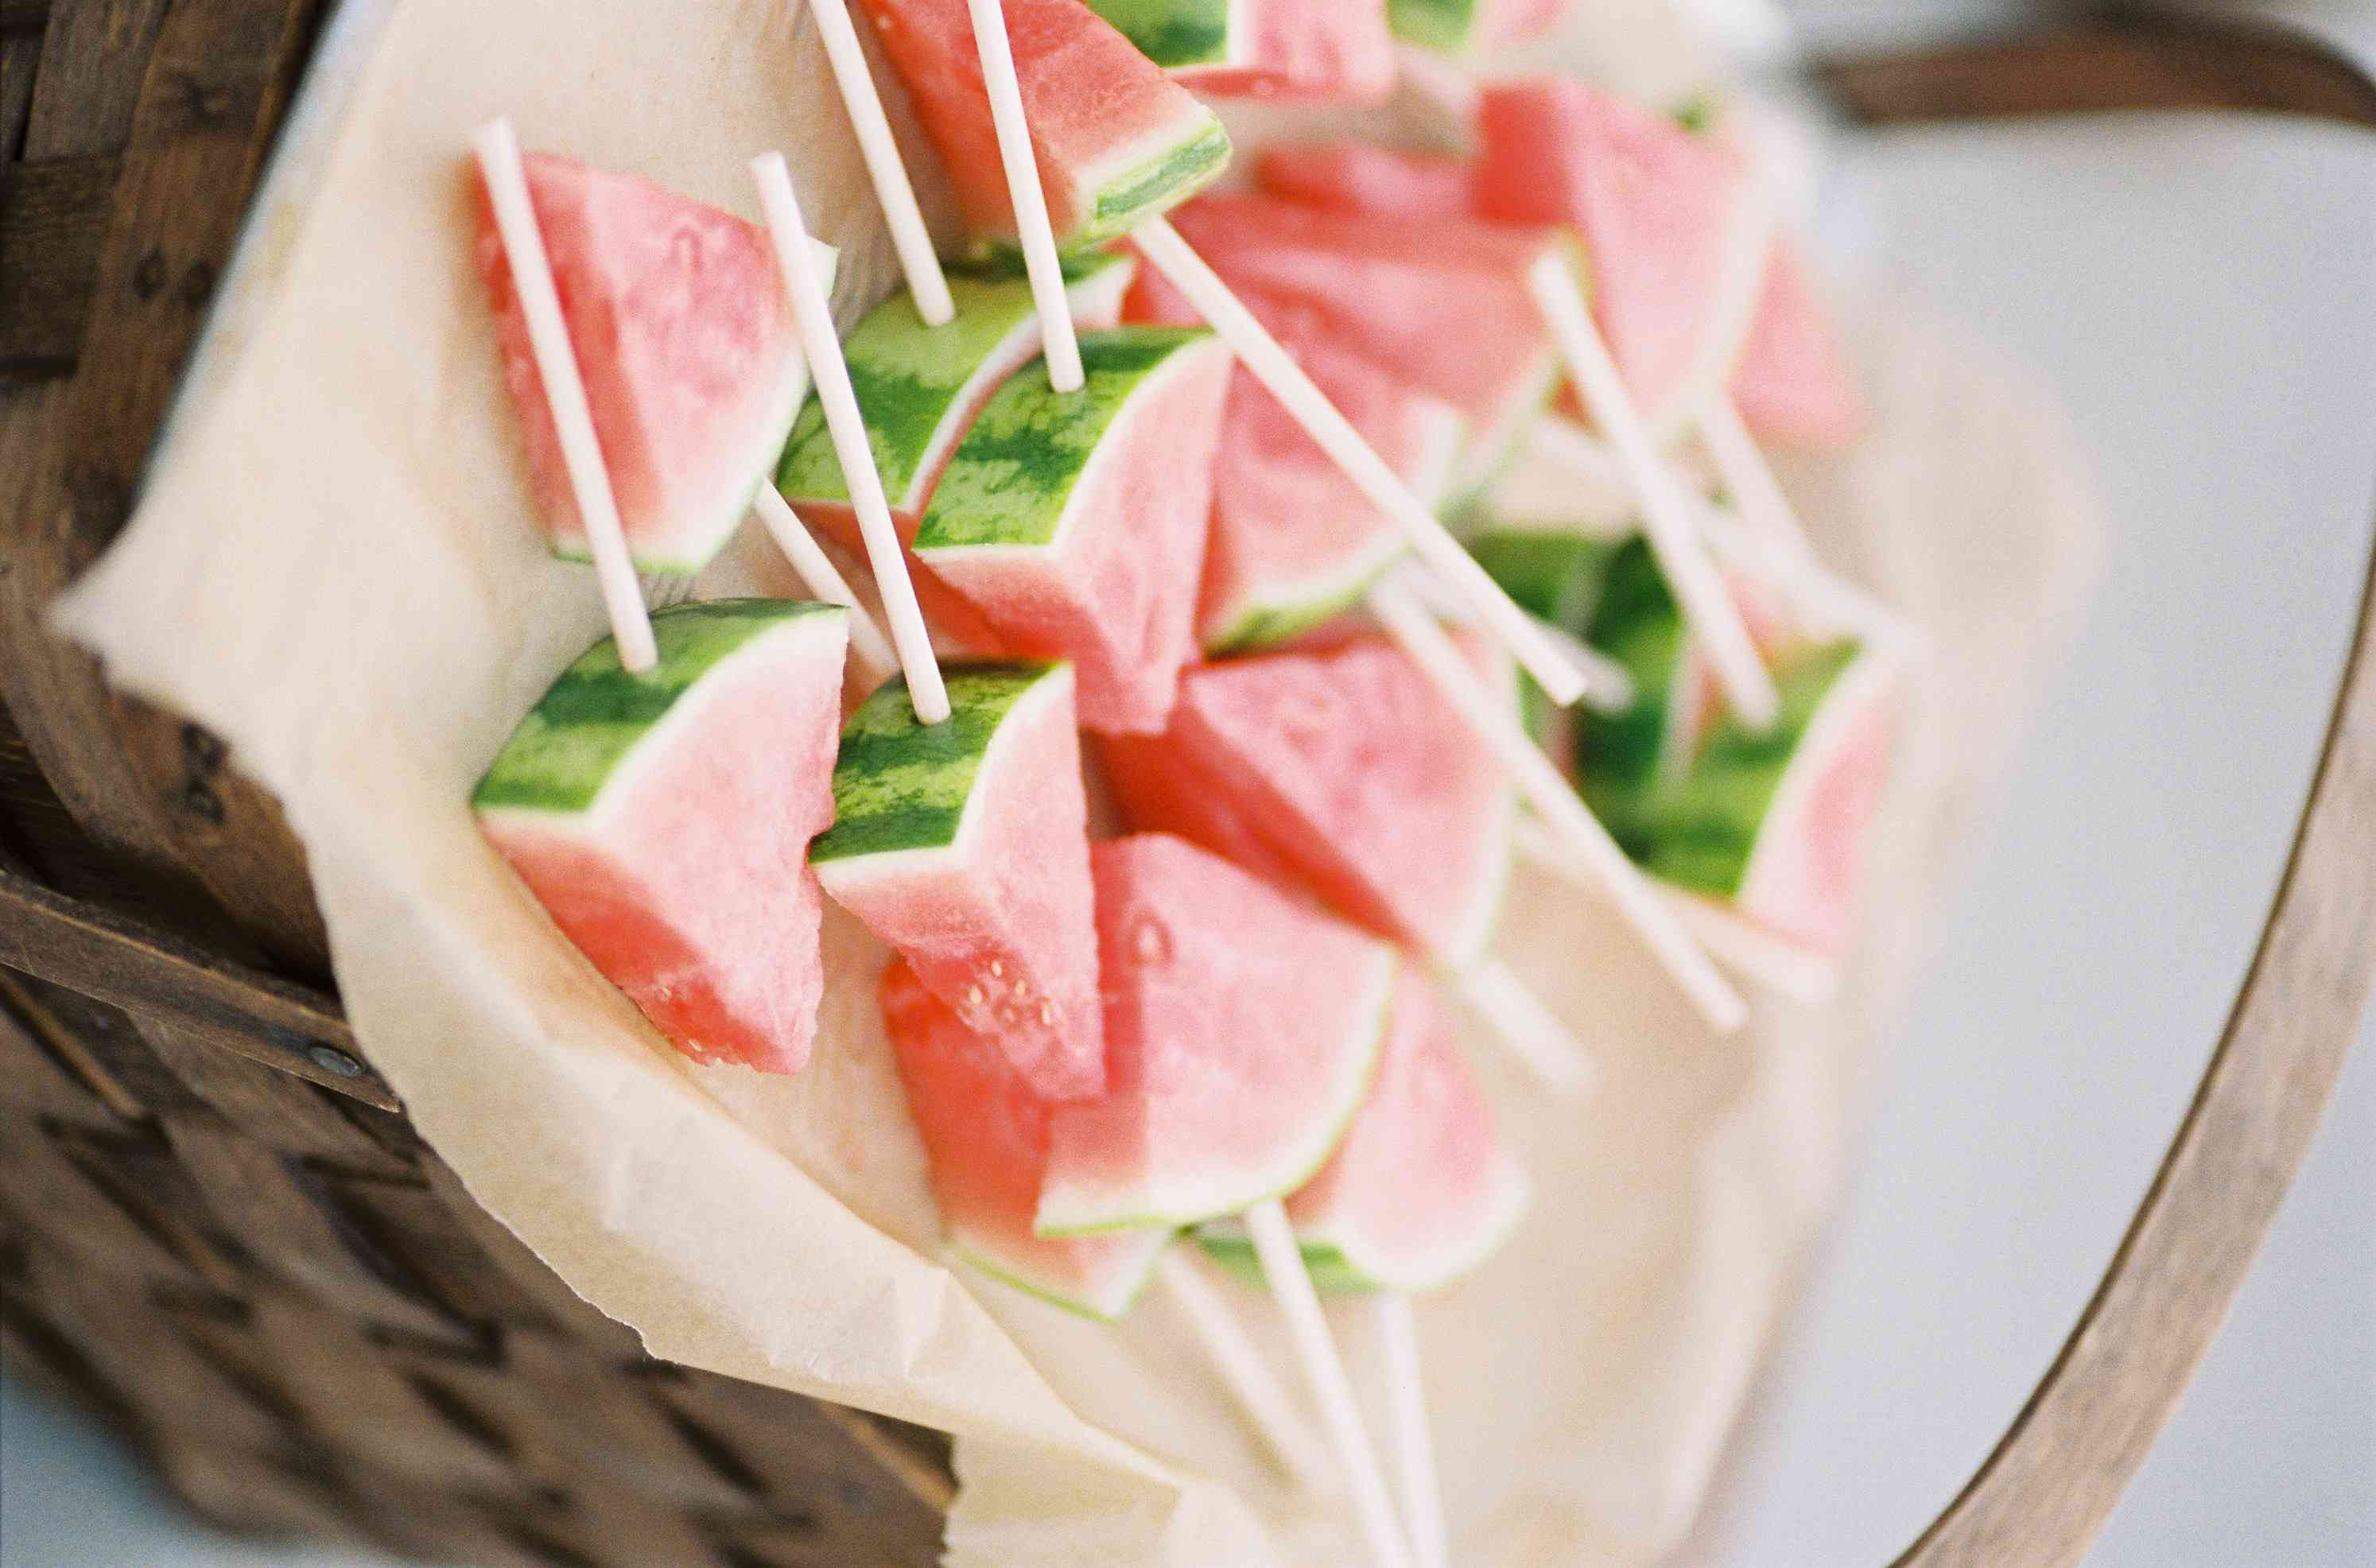 Basket with watermelon slices on skewers